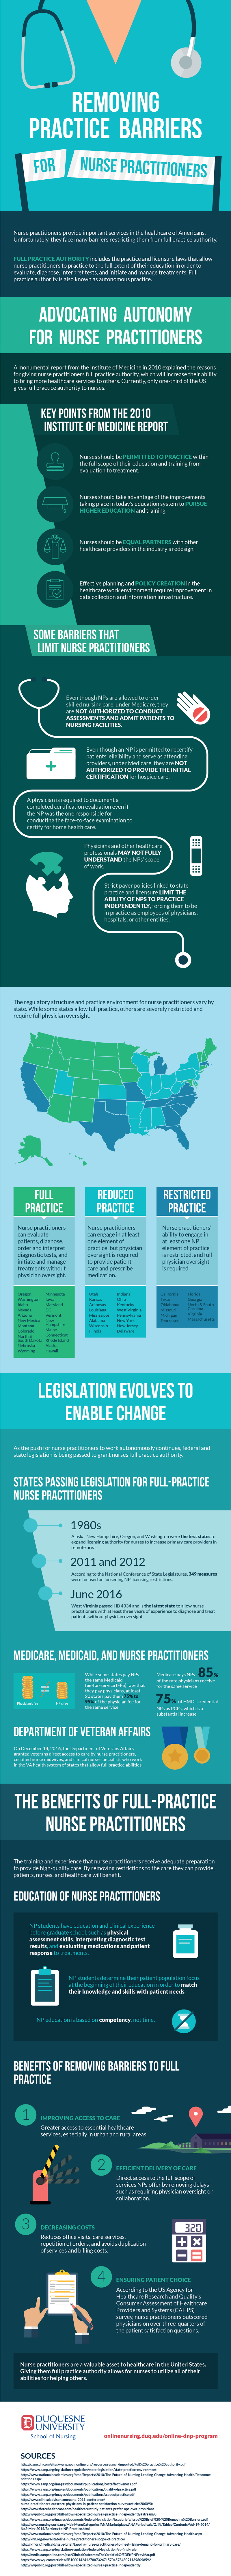 Infographic of removing barriers for nurse practitioners